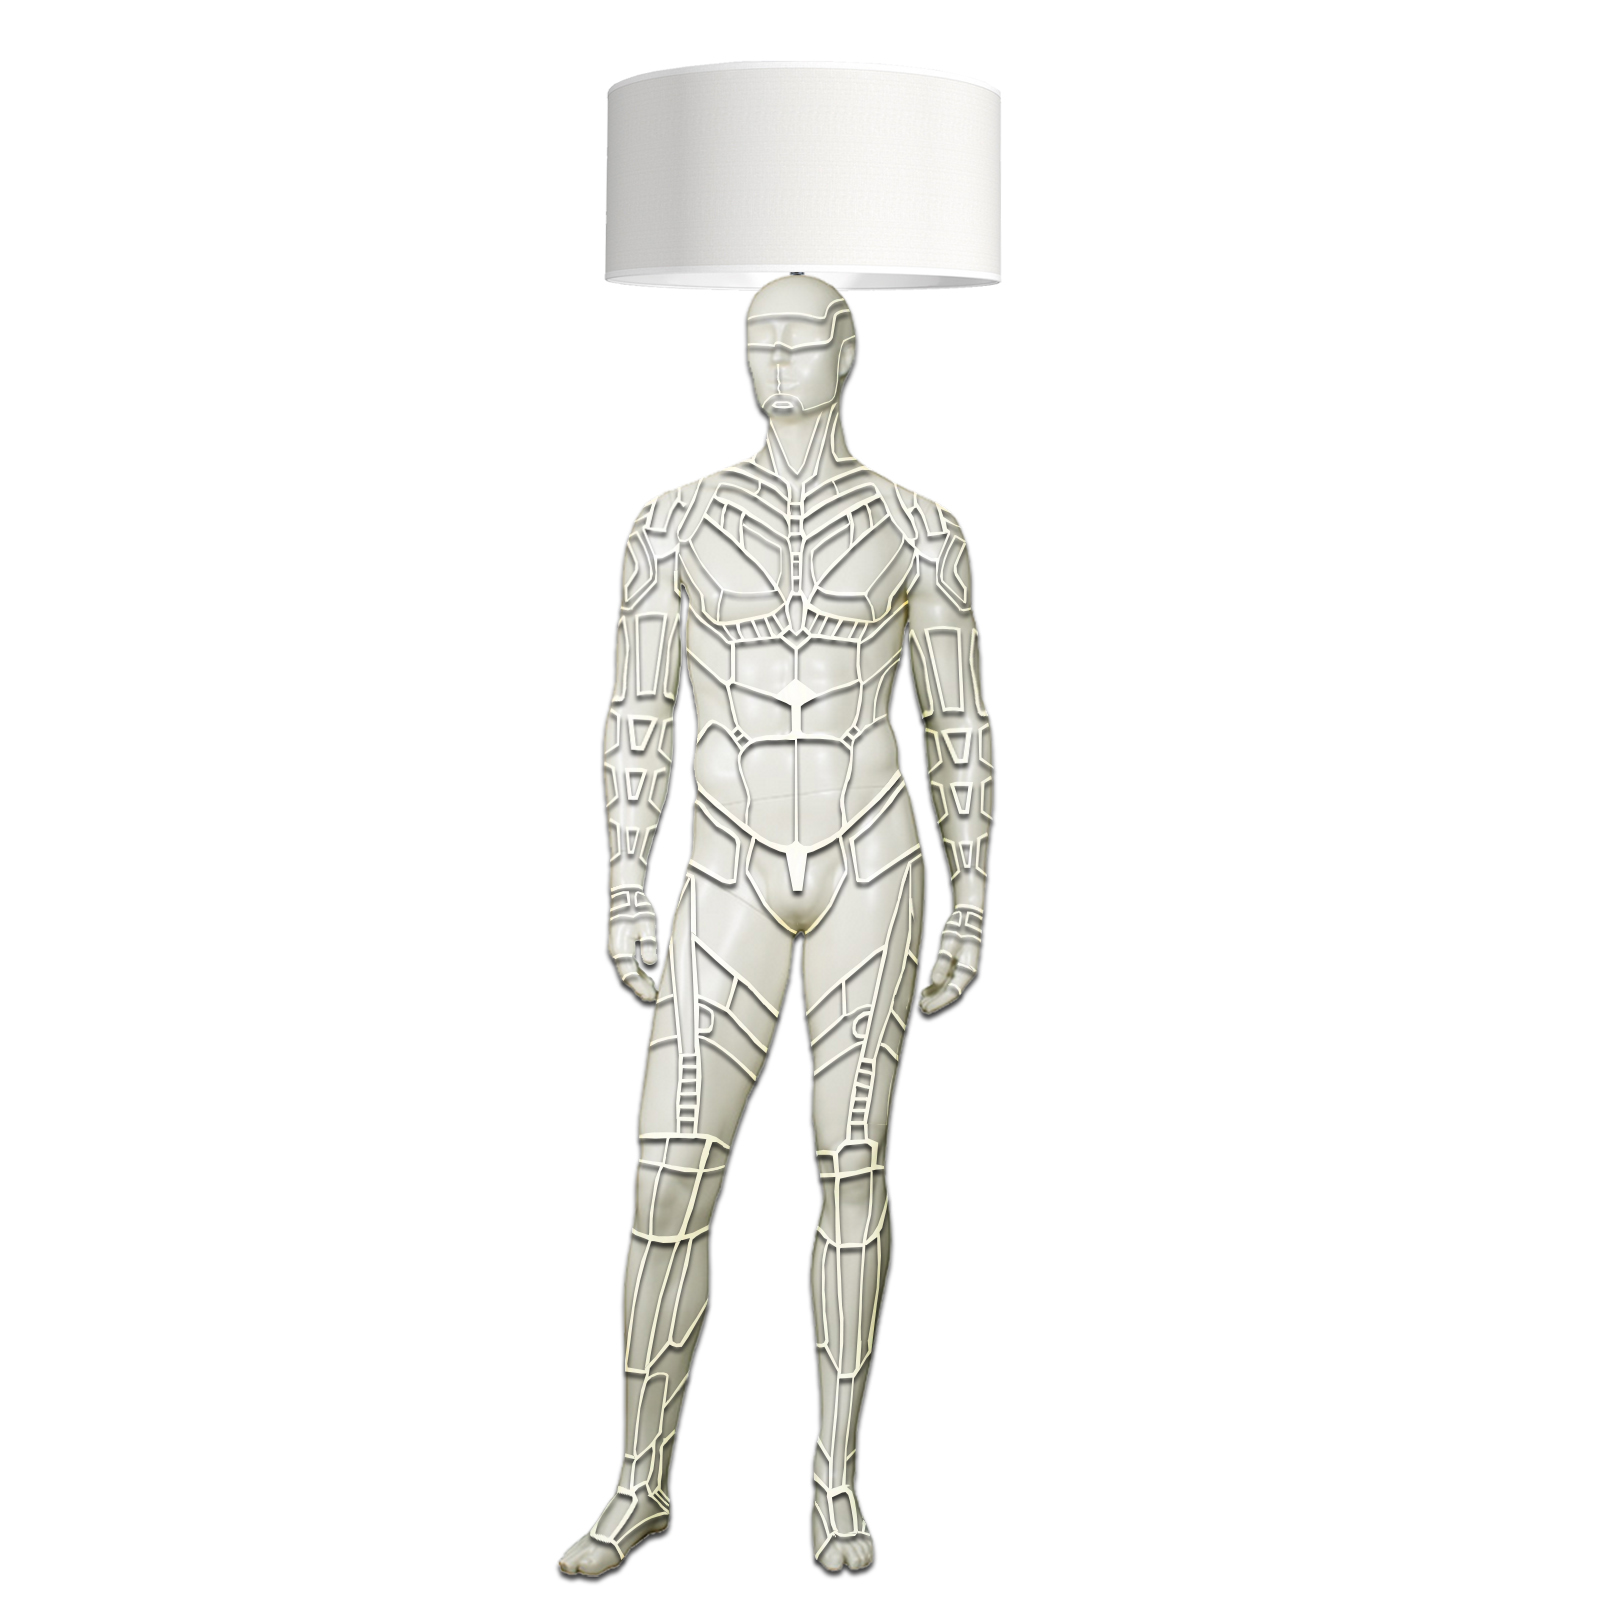 Mannequin Floor Lamp_Male_Cyborg